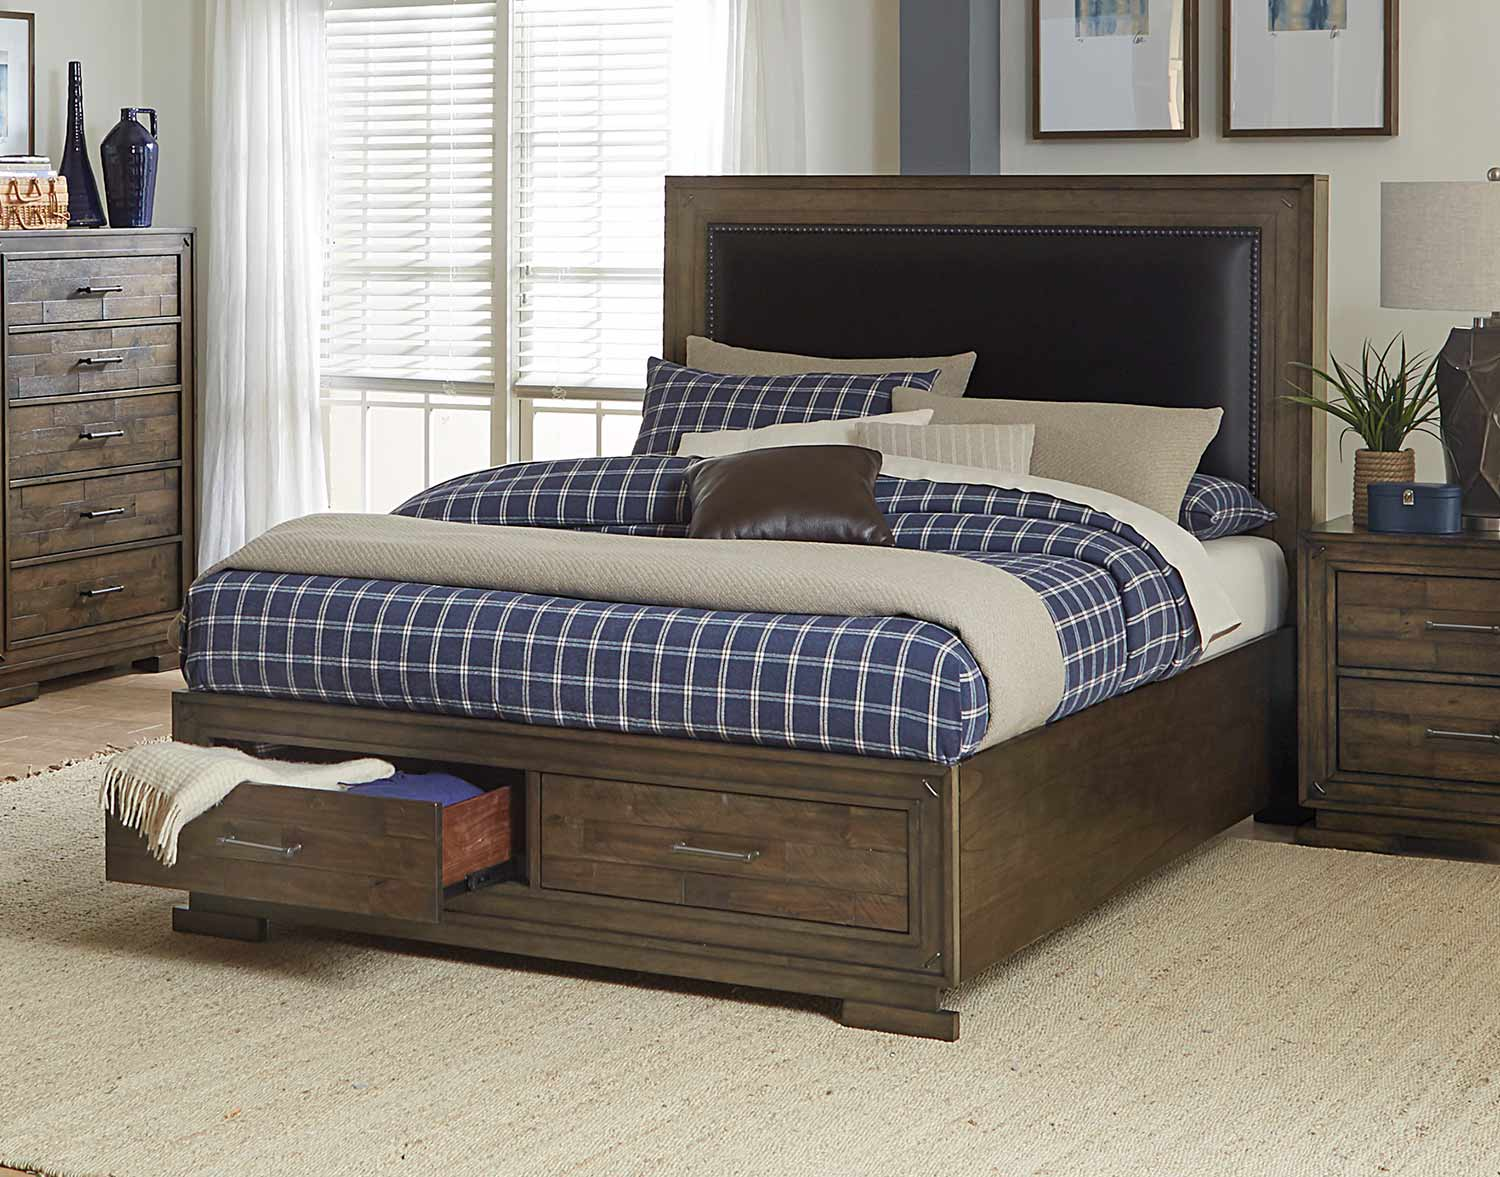 Homelegance Griffon Platform Storage Bed - Antique Brown